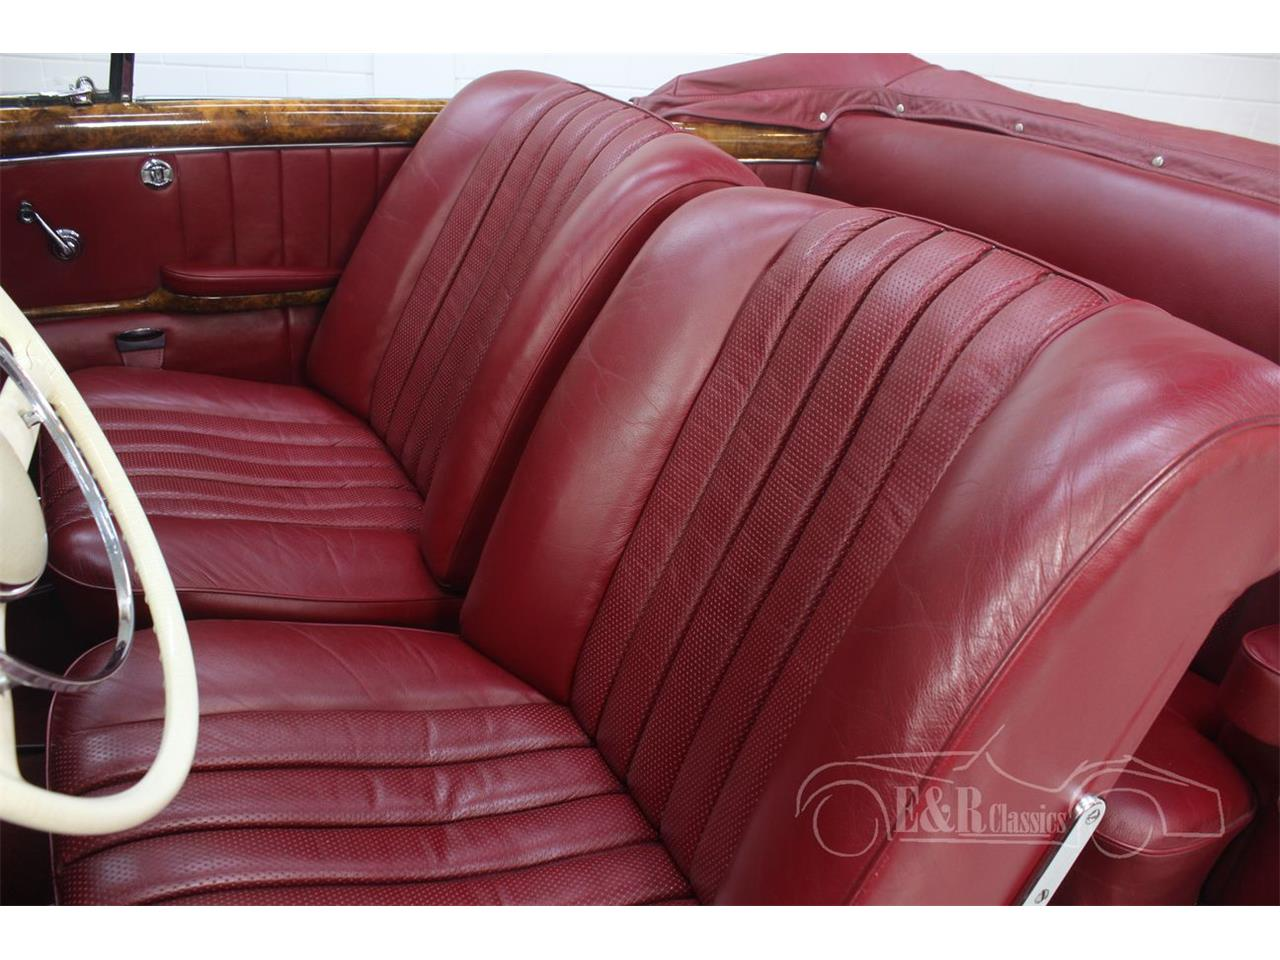 Large Picture of 1960 220SE located in Waalwijk noord brabant - $143,800.00 Offered by E & R Classics - R1DL